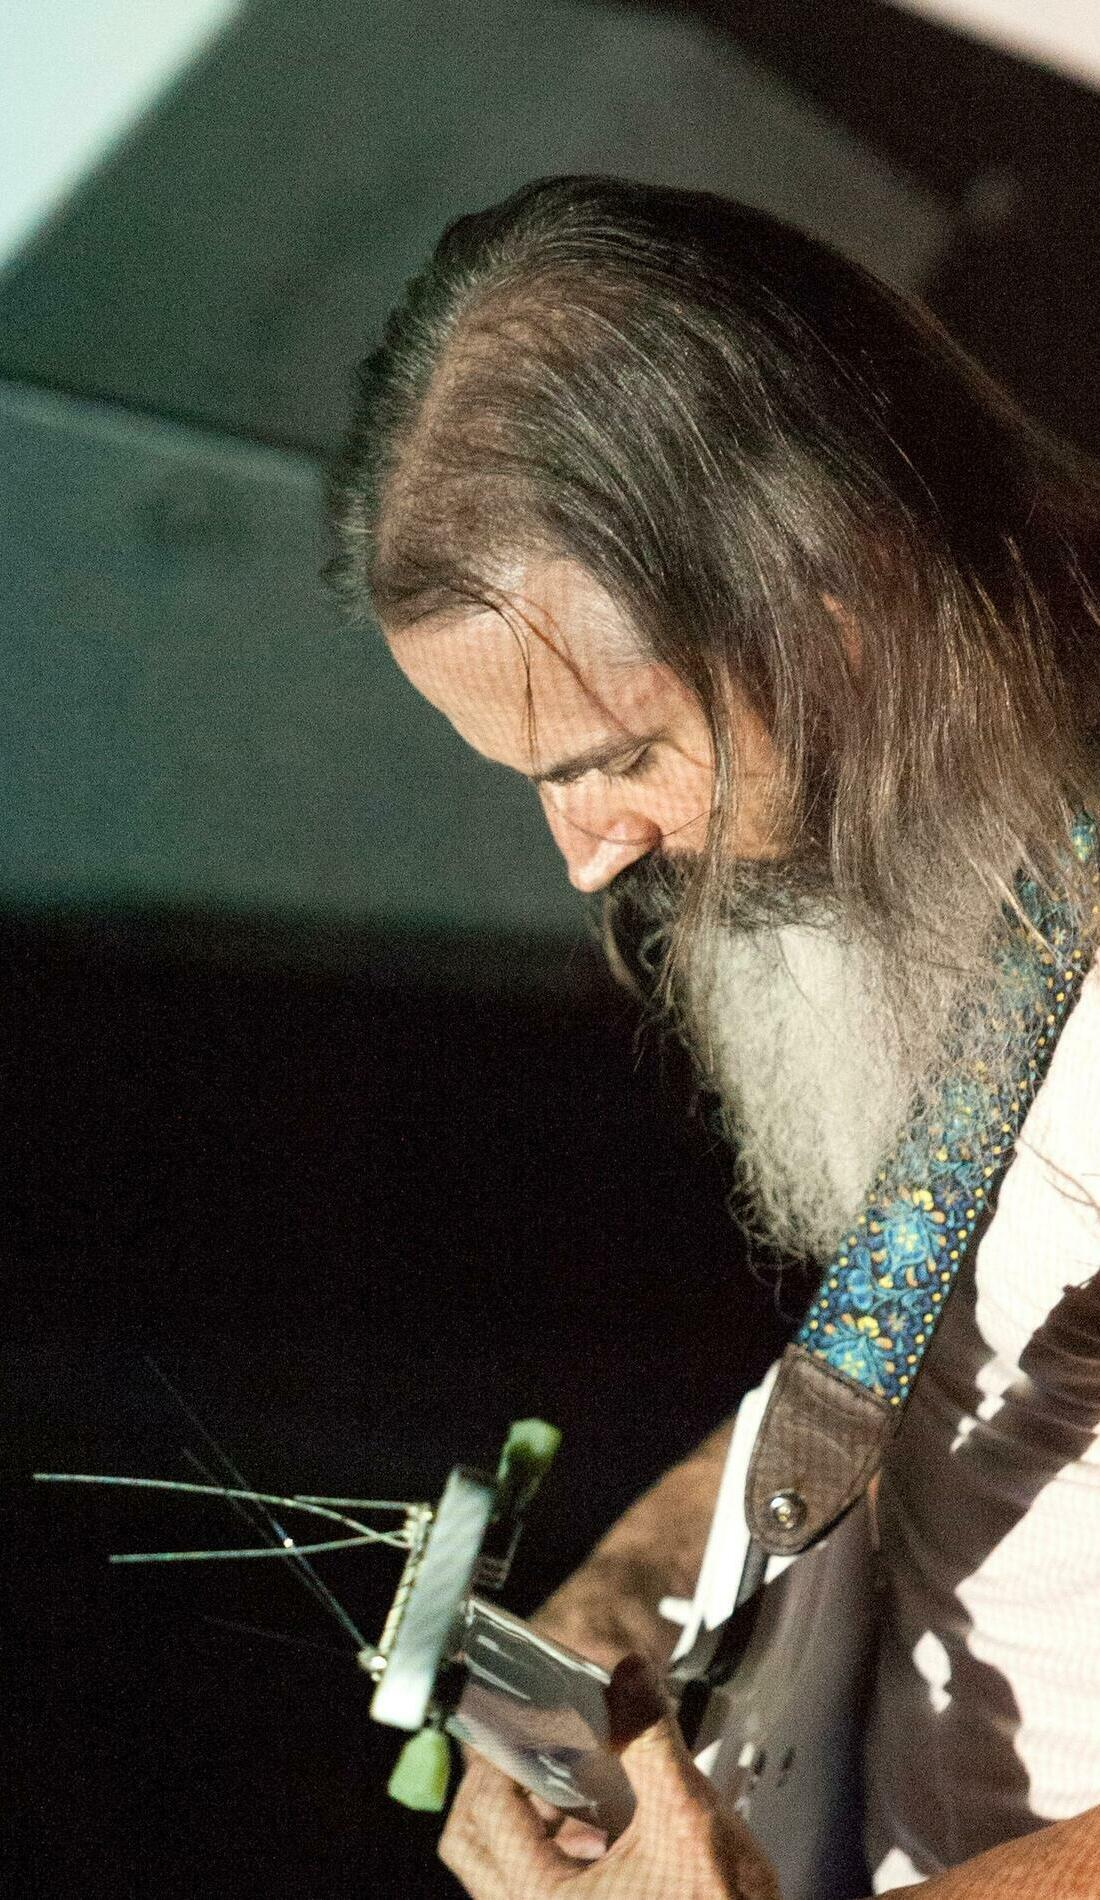 A Moon Duo live event